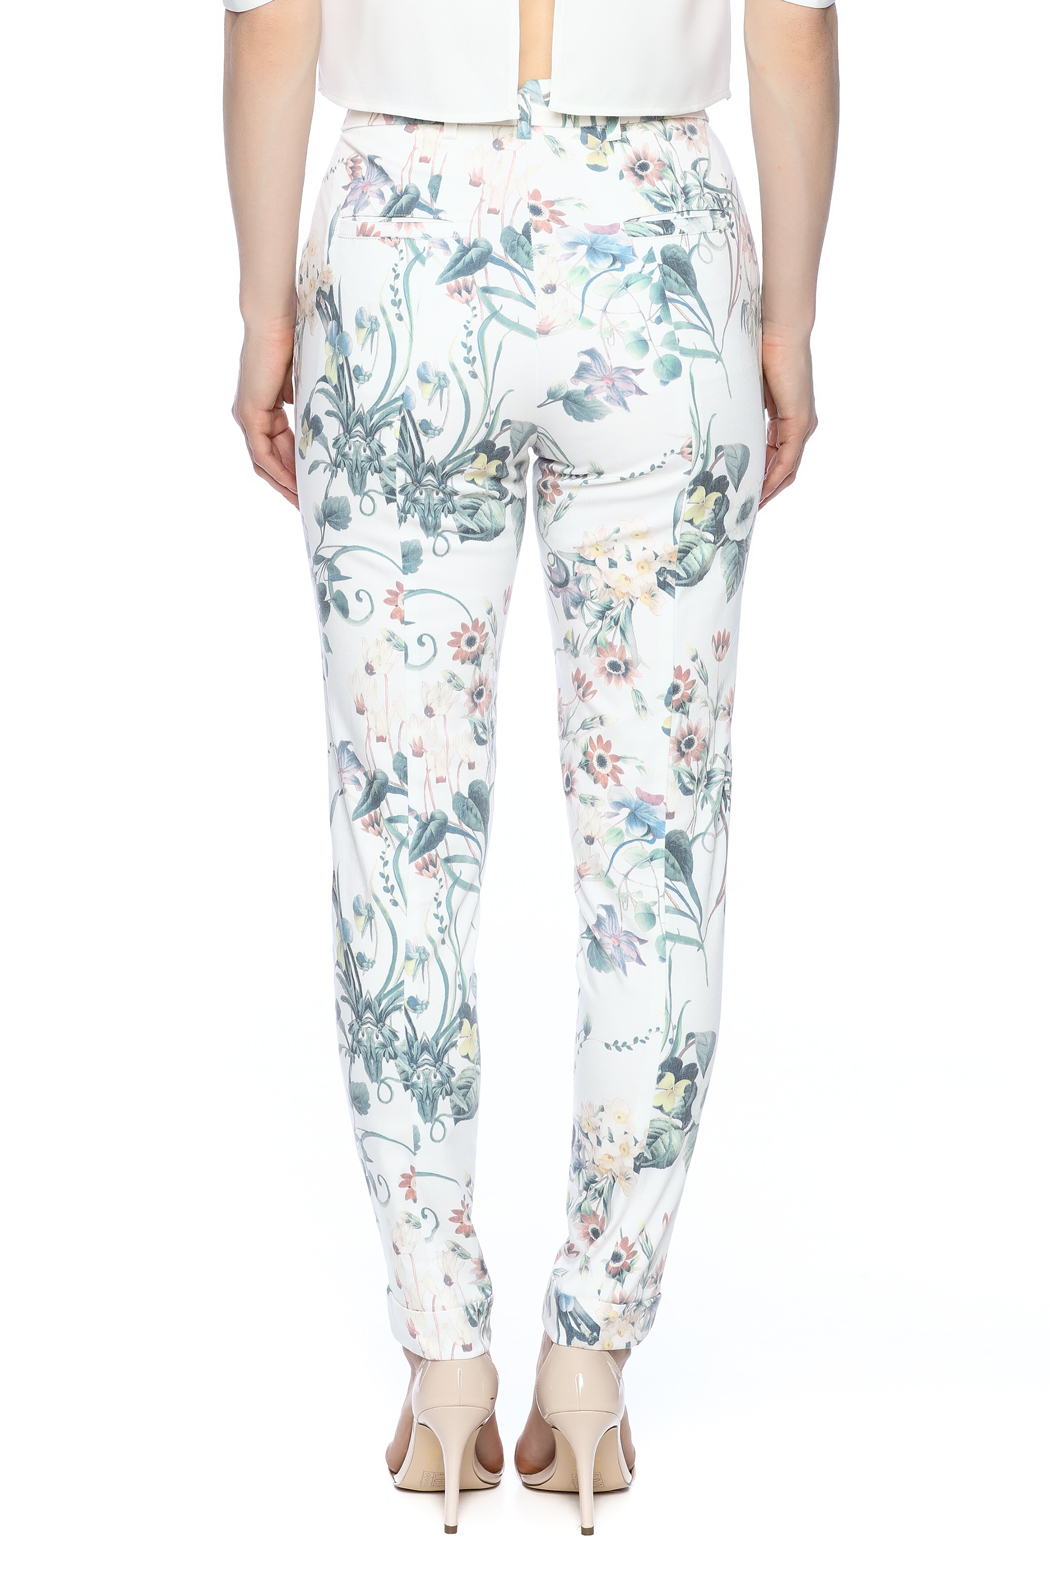 Alythea Floral Pants - Back Cropped Image